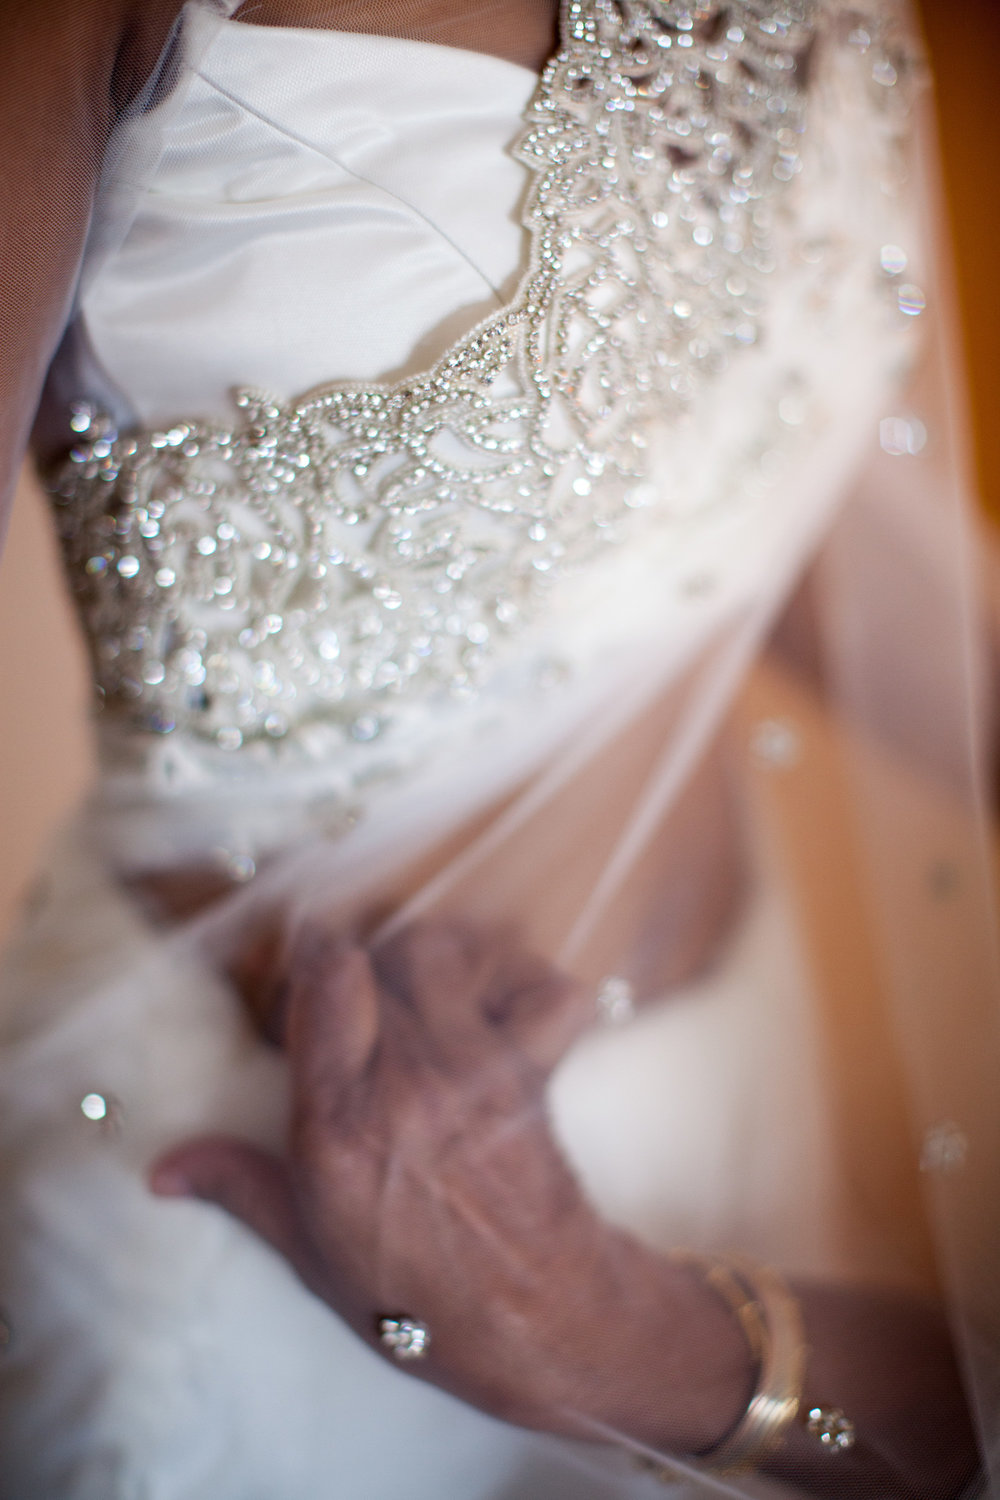 Sari wedding dress, wedding London, England, wedding photographer England London